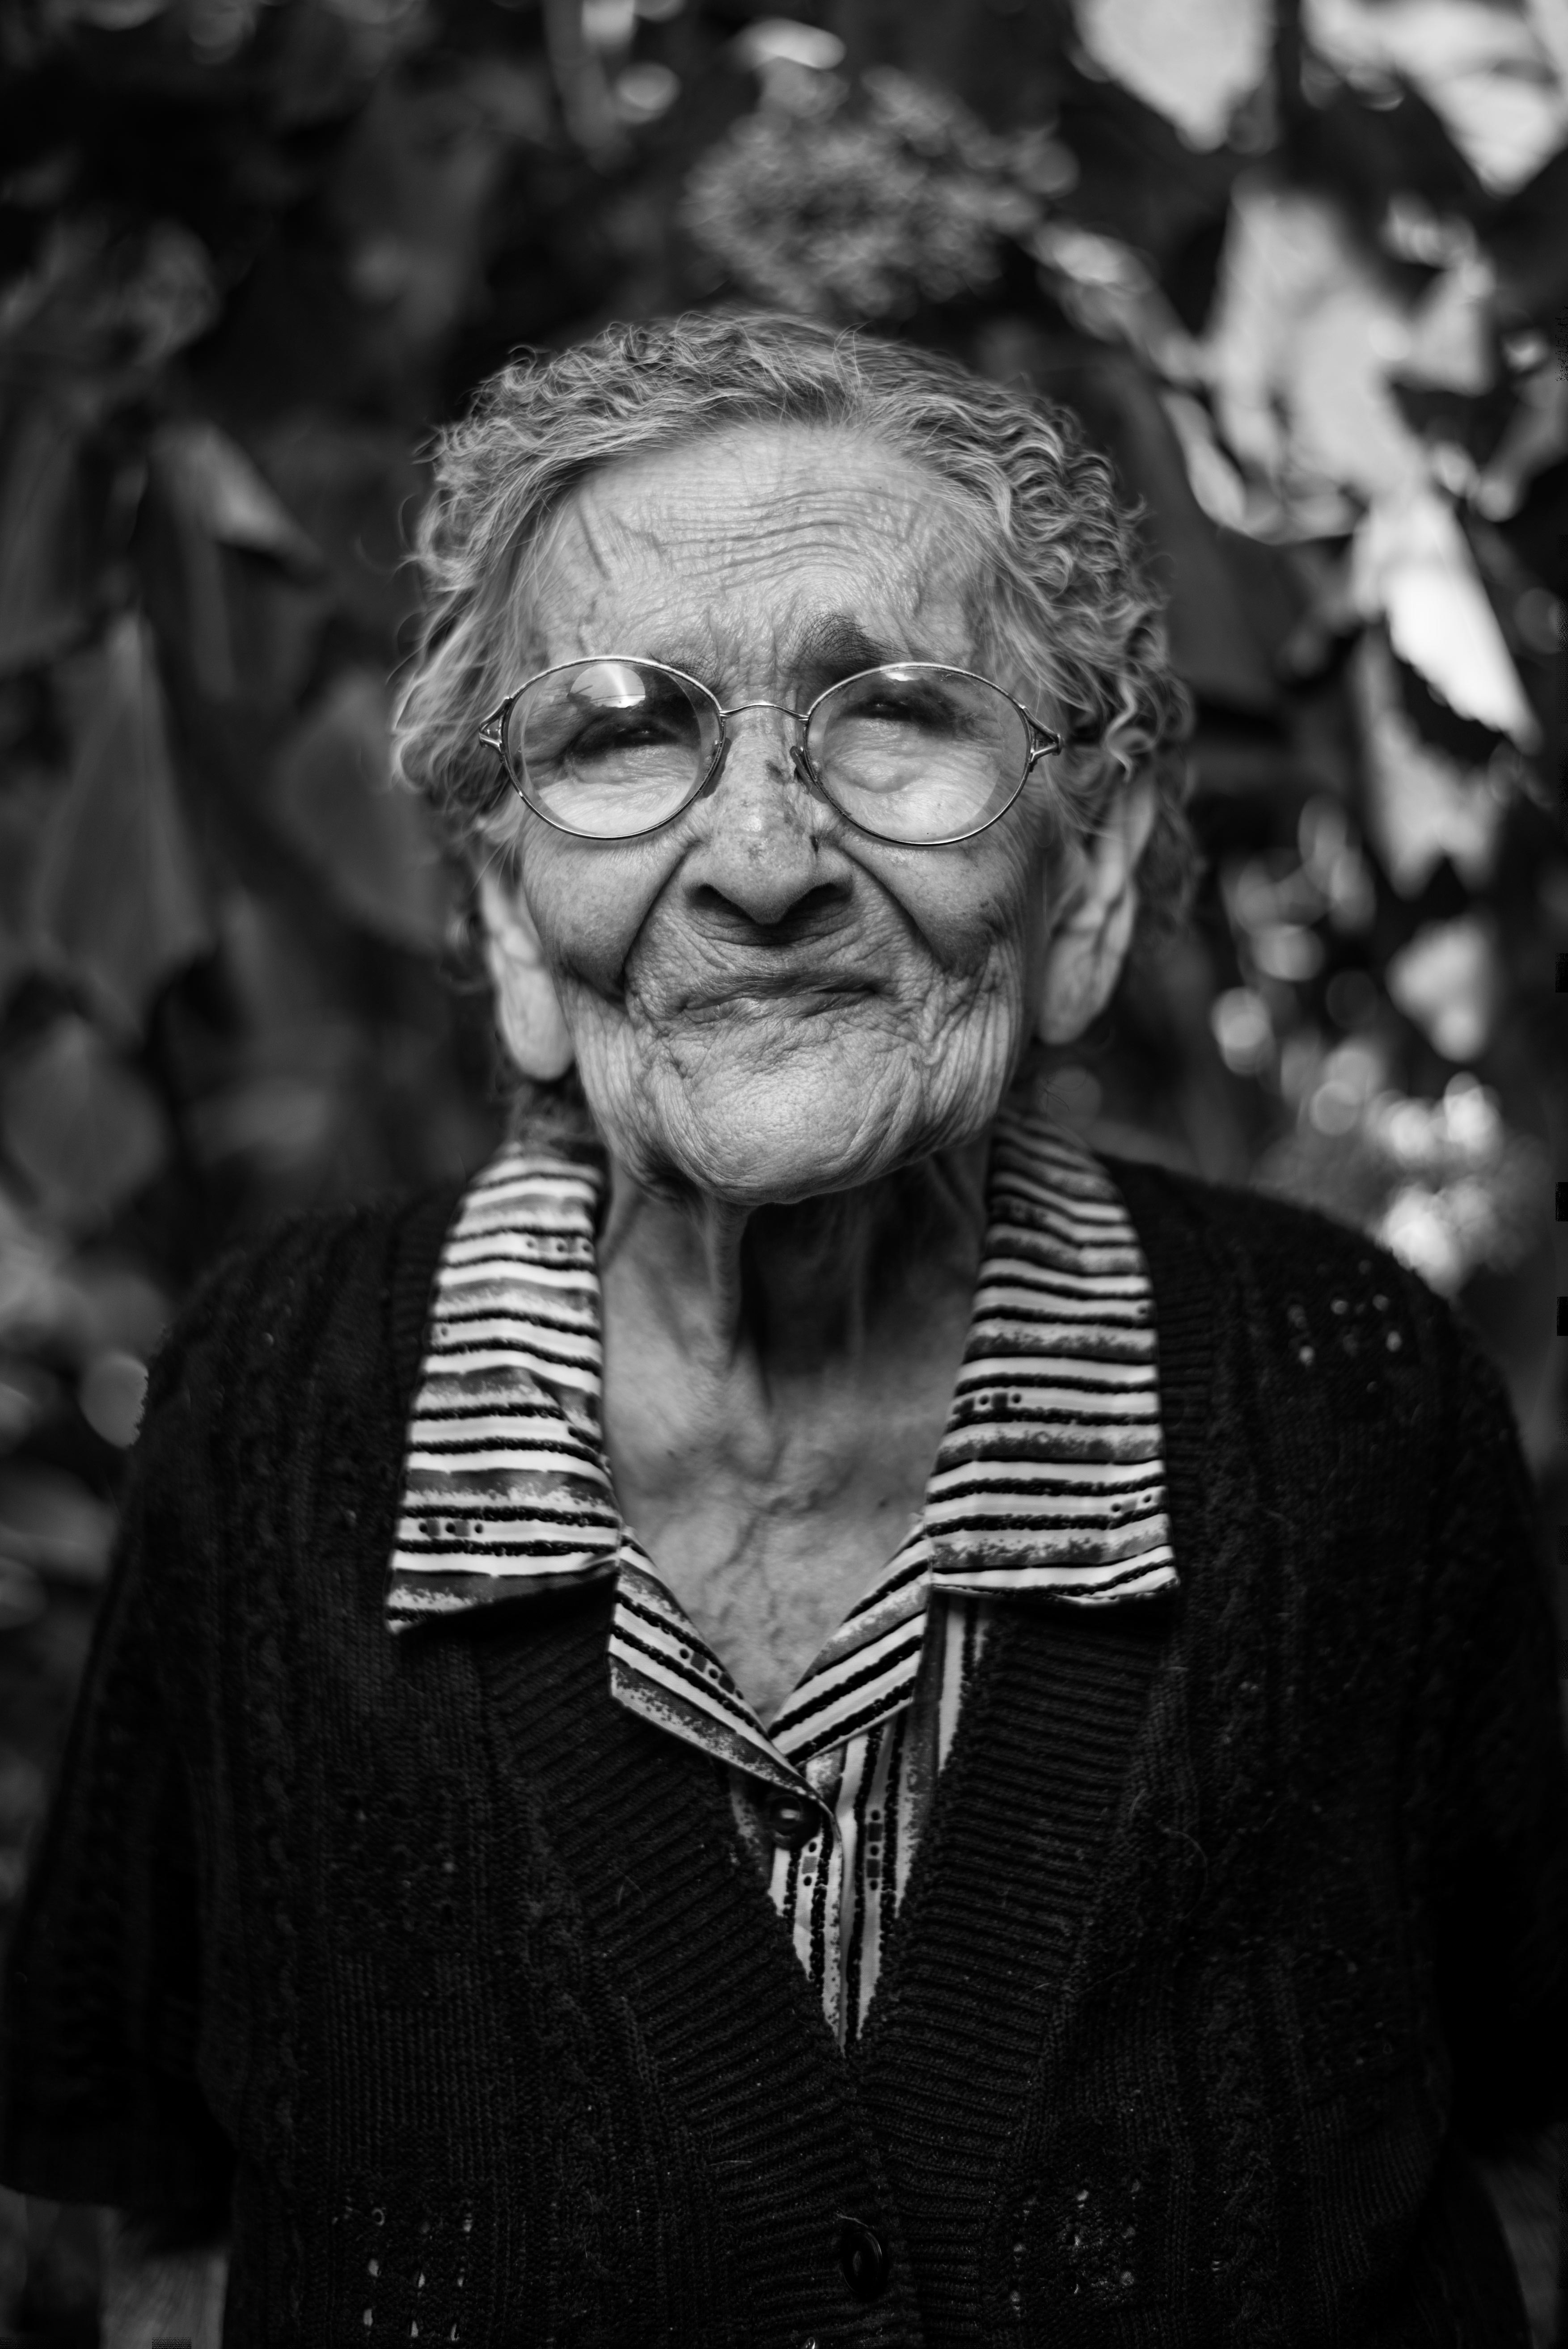 An old retired women with circular glasses in a black and white close-up macro portrait.